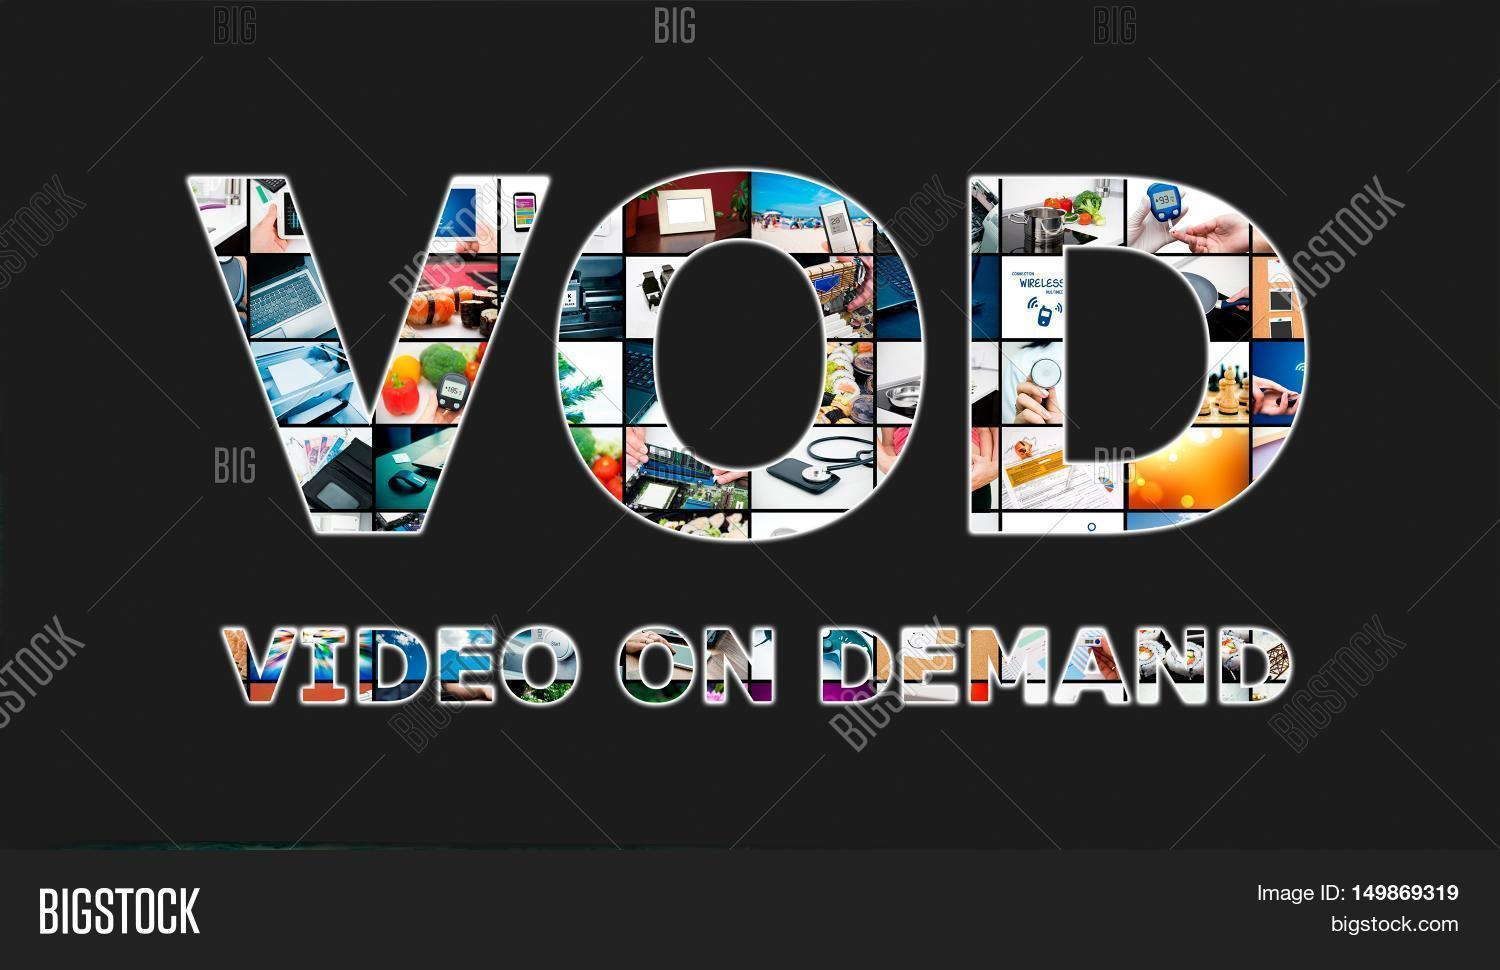 vod,video,demand,mask,tv,hd,screen,pixel,flat,high,led,display,movie,1080p,4k,wide,television,full,plasma,digital,technology,resolution,inch,equipment,modern,entertainment,monitor,definition,design,watch,lcd,quality,picture,play,image,format,hdmi,electronics